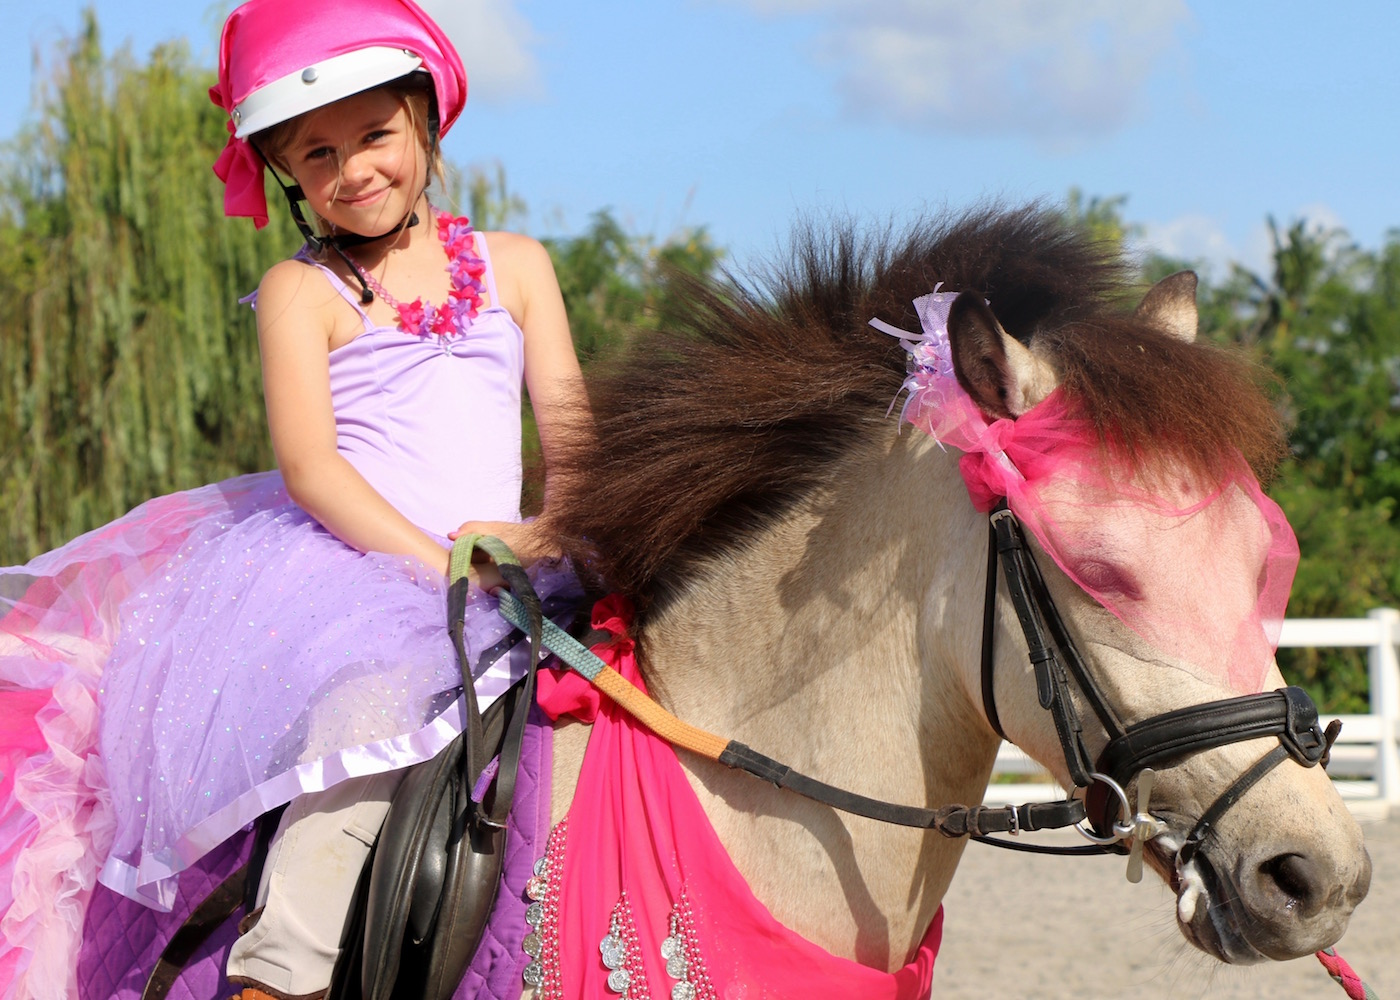 Things to do with kids in Canggu - Take them horse riding